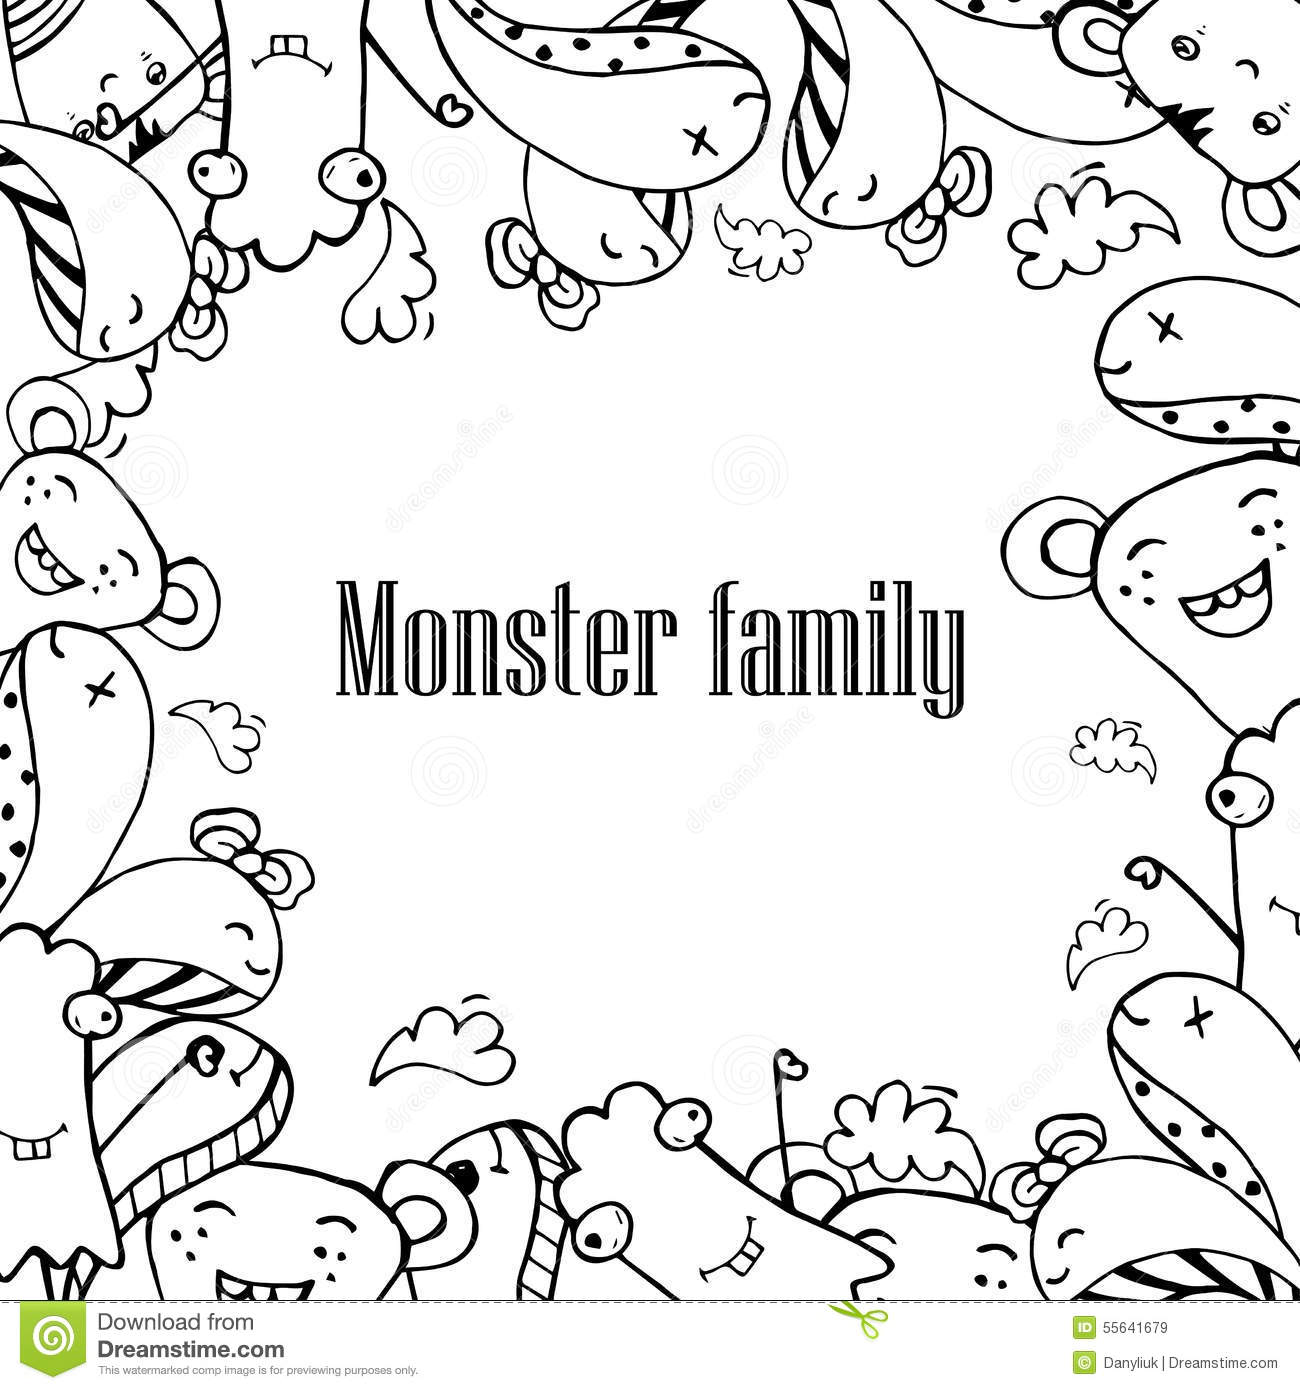 Vector Illustration Of Monsters And Cute Alien Friendly Cool